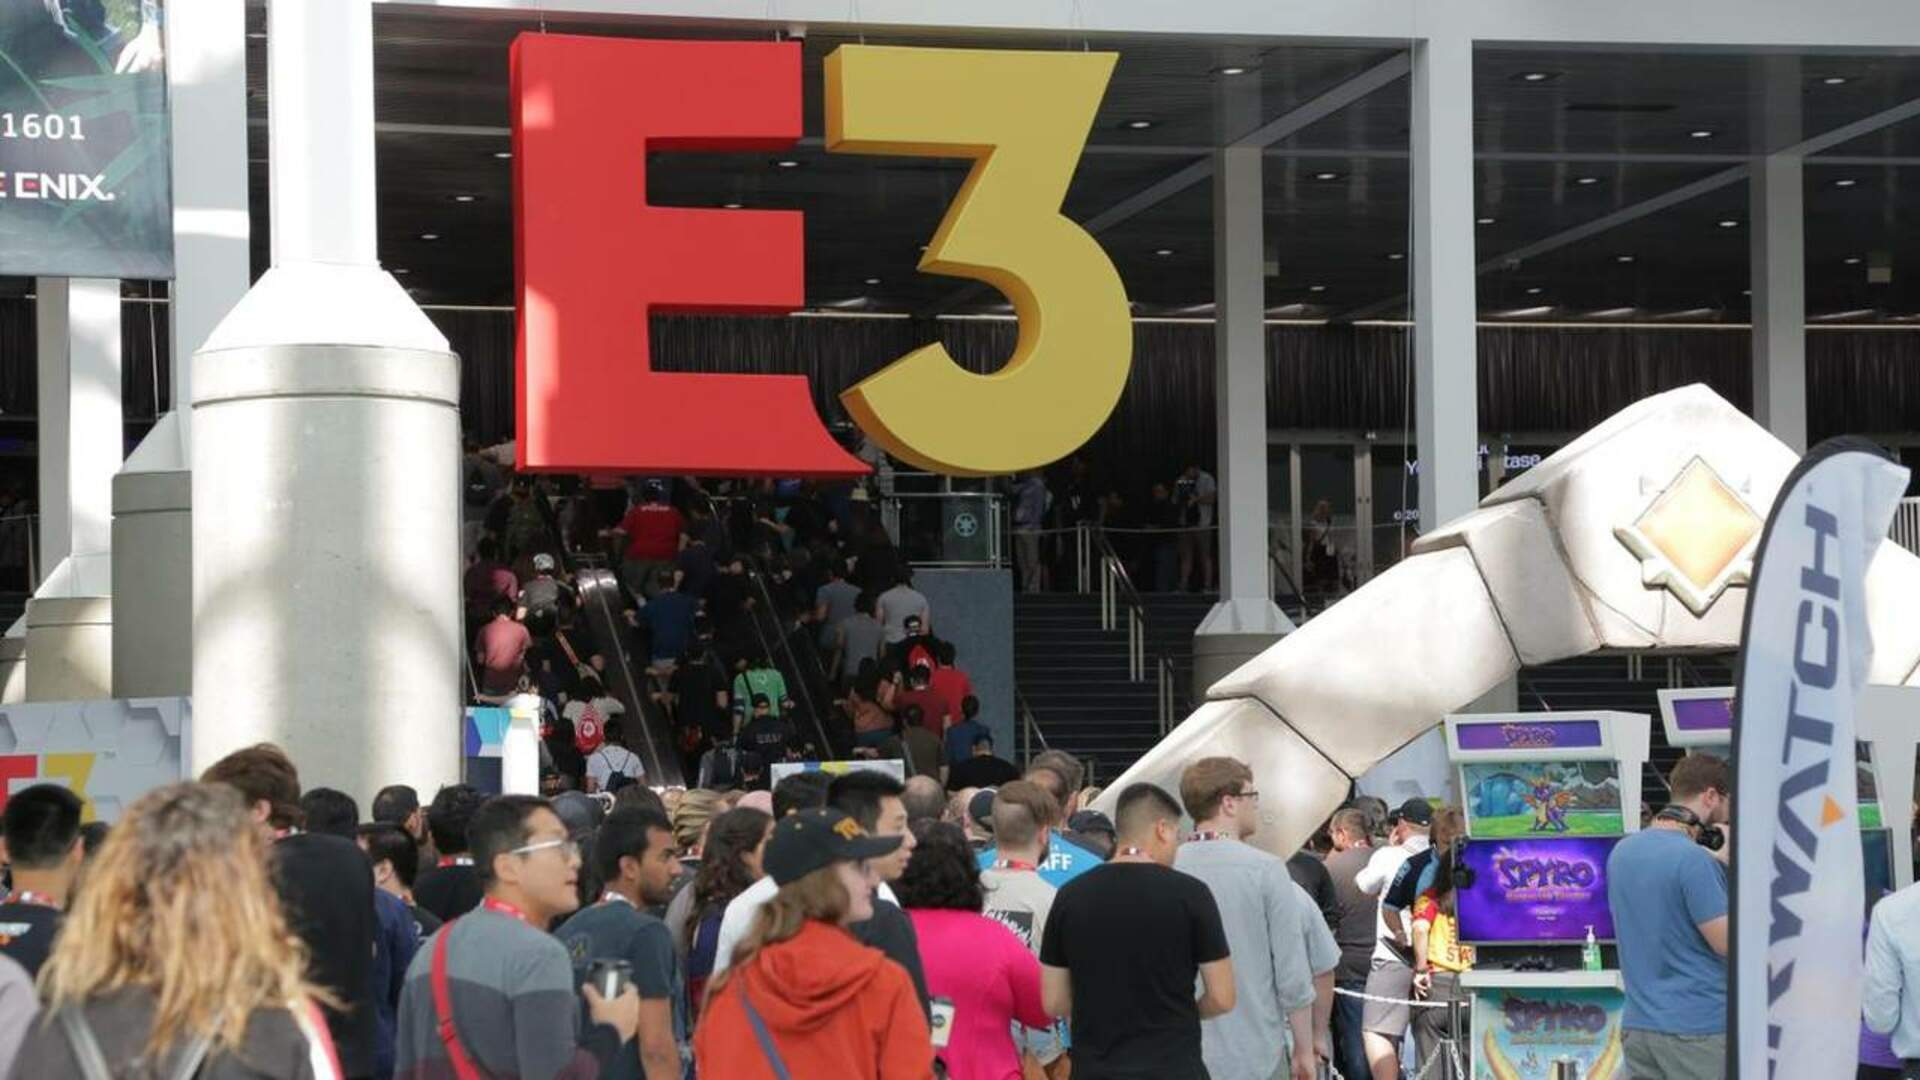 E3 May Soon be Seeing Some Big Changes [Update]